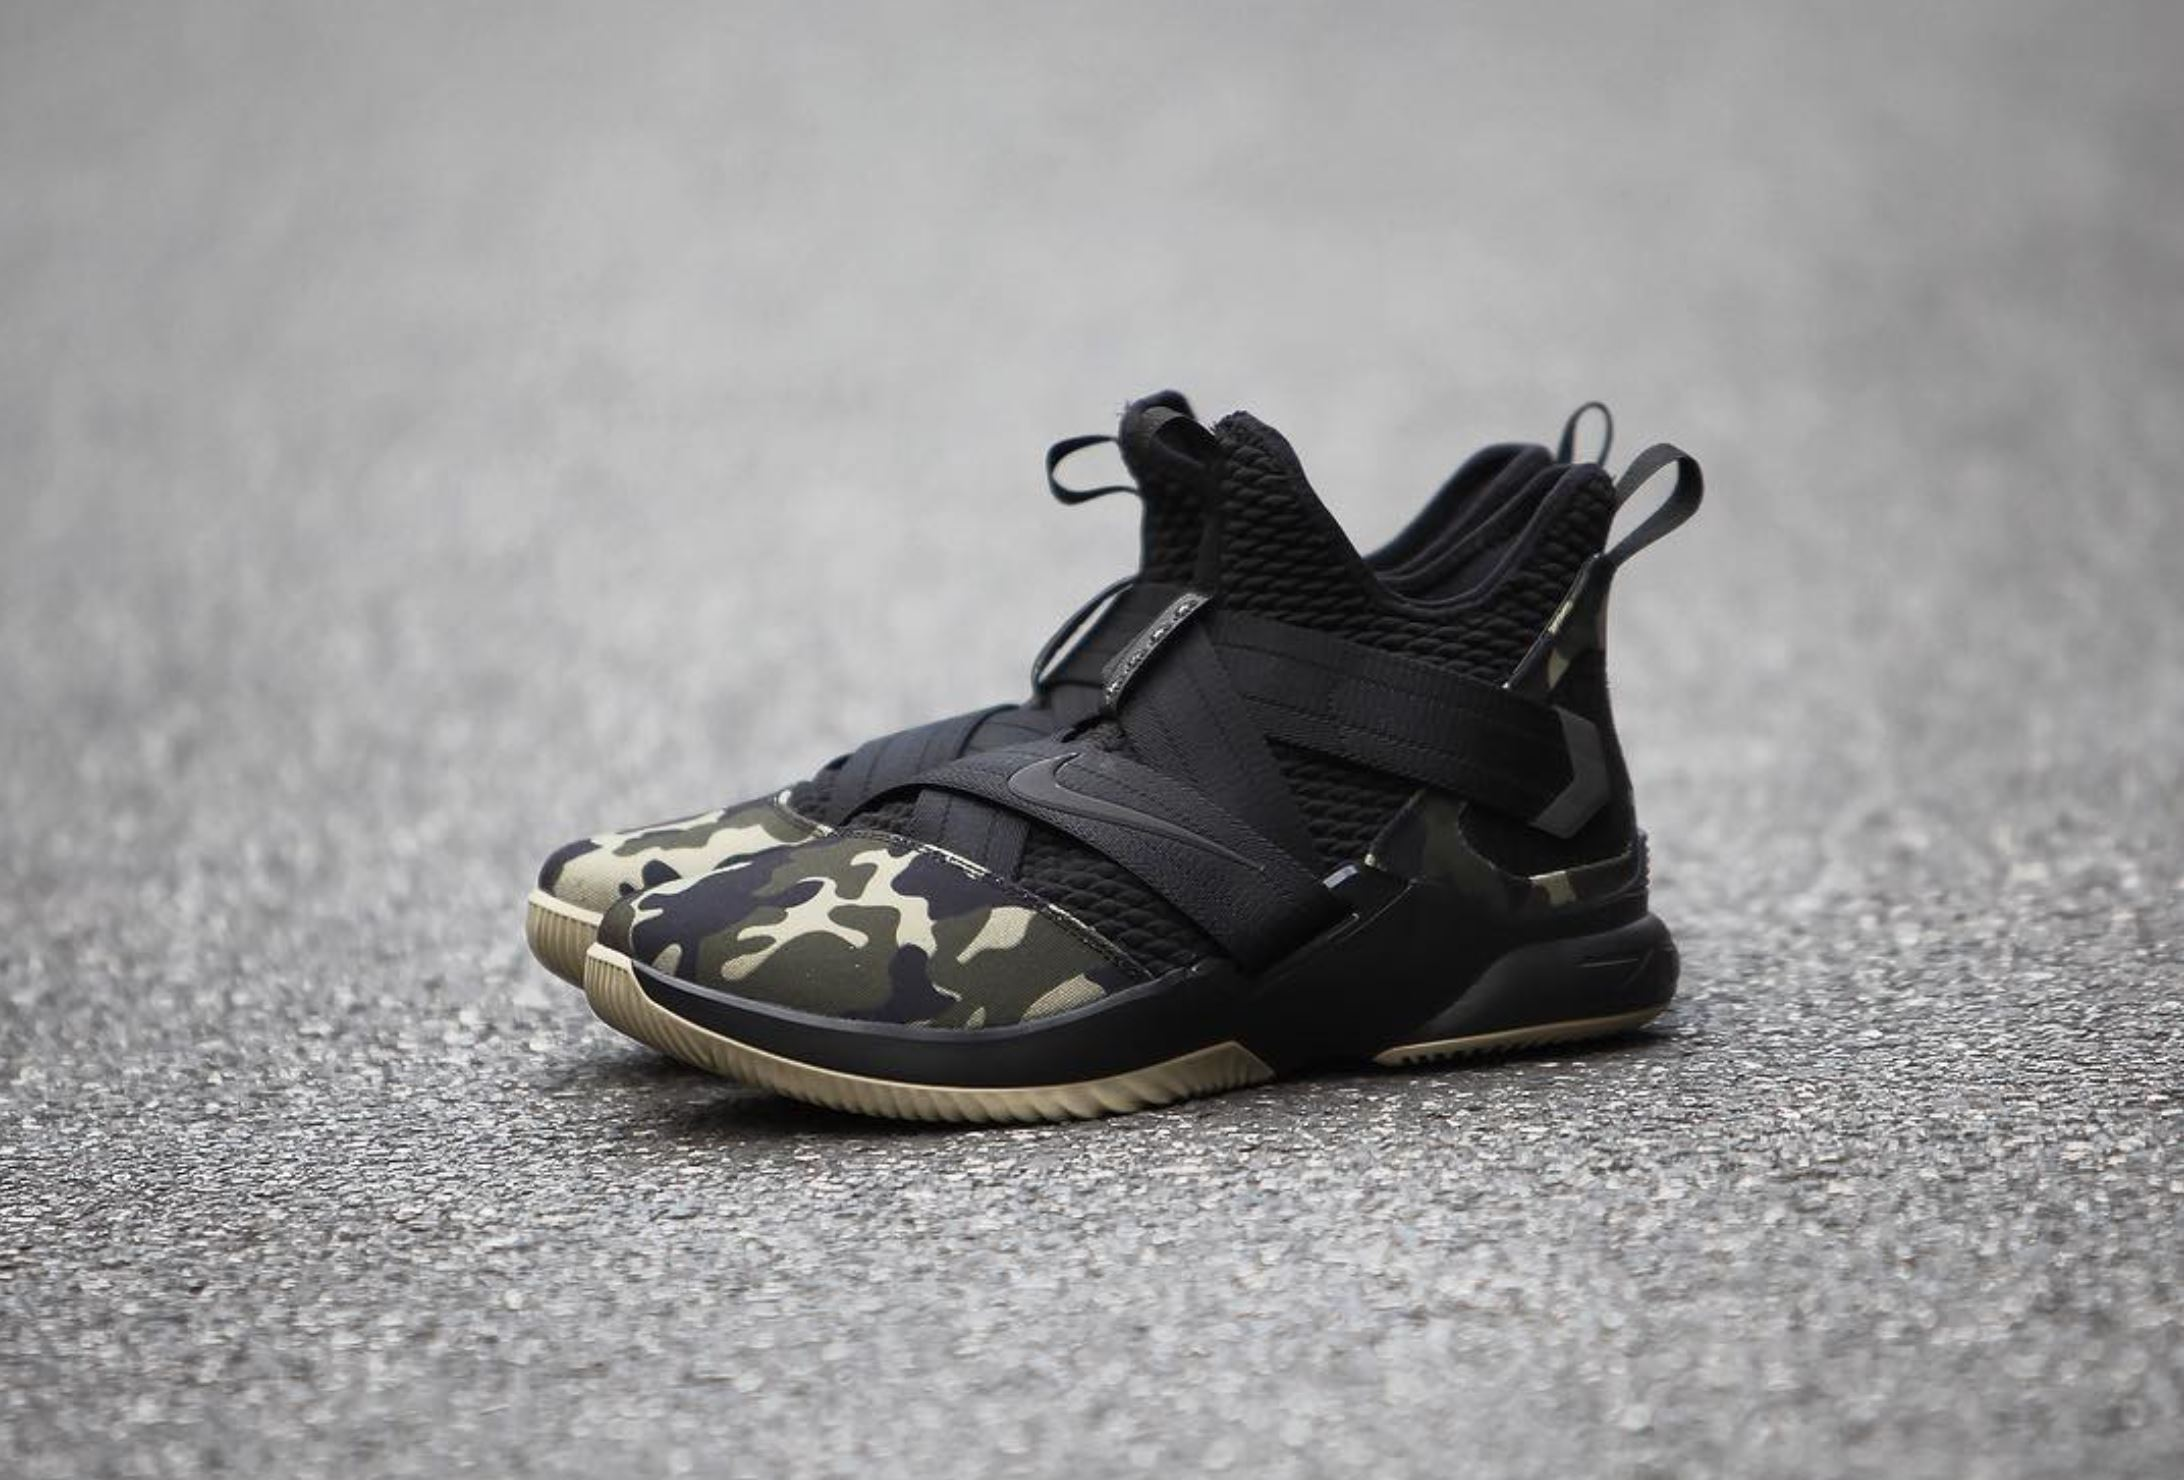 best service 0cf56 f1458 Here's a Detailed Look at the Nike LeBron Soldier 12 'Camo ...